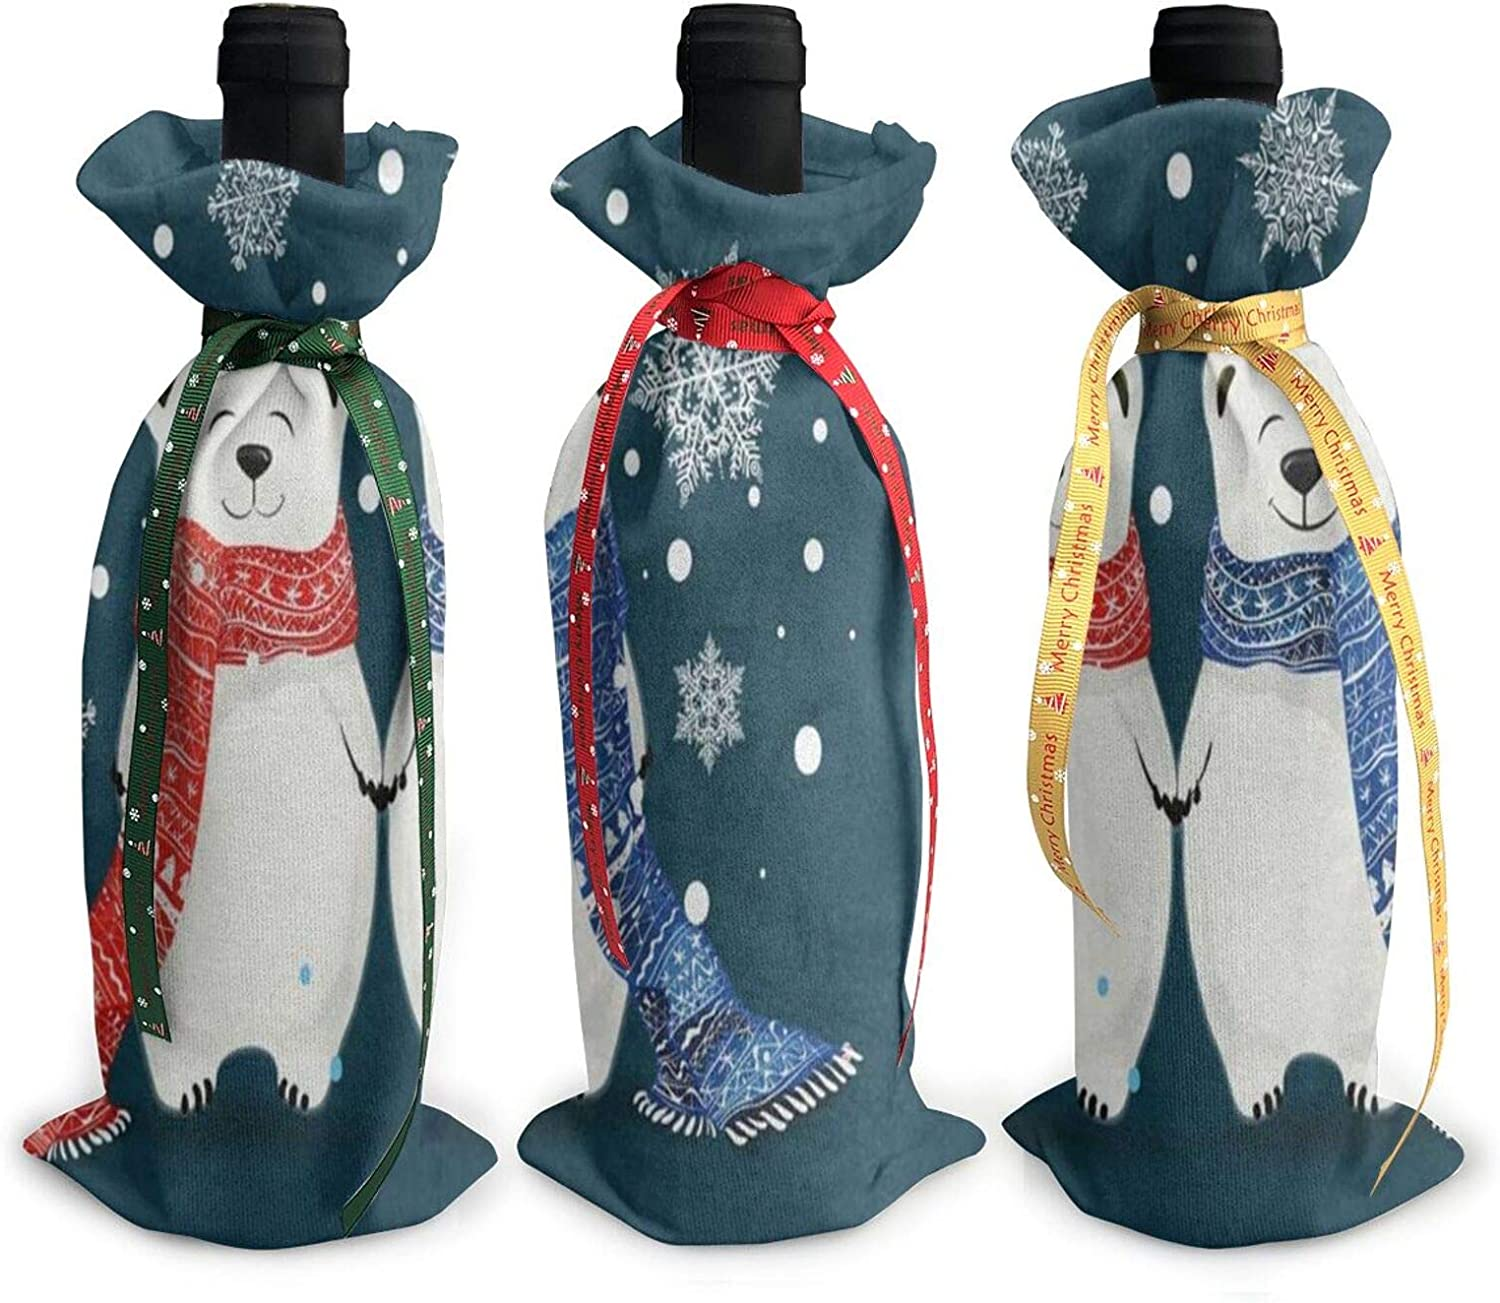 Christmas Wine Bottle Cover Bag Christmas Polar Bears Snowflakes Blue Single Reusable Wine Bottle Dress Wrap Sets 3 Decoration Bag With Ropes Dinner Party Table Decor Christmas Handmade Gift